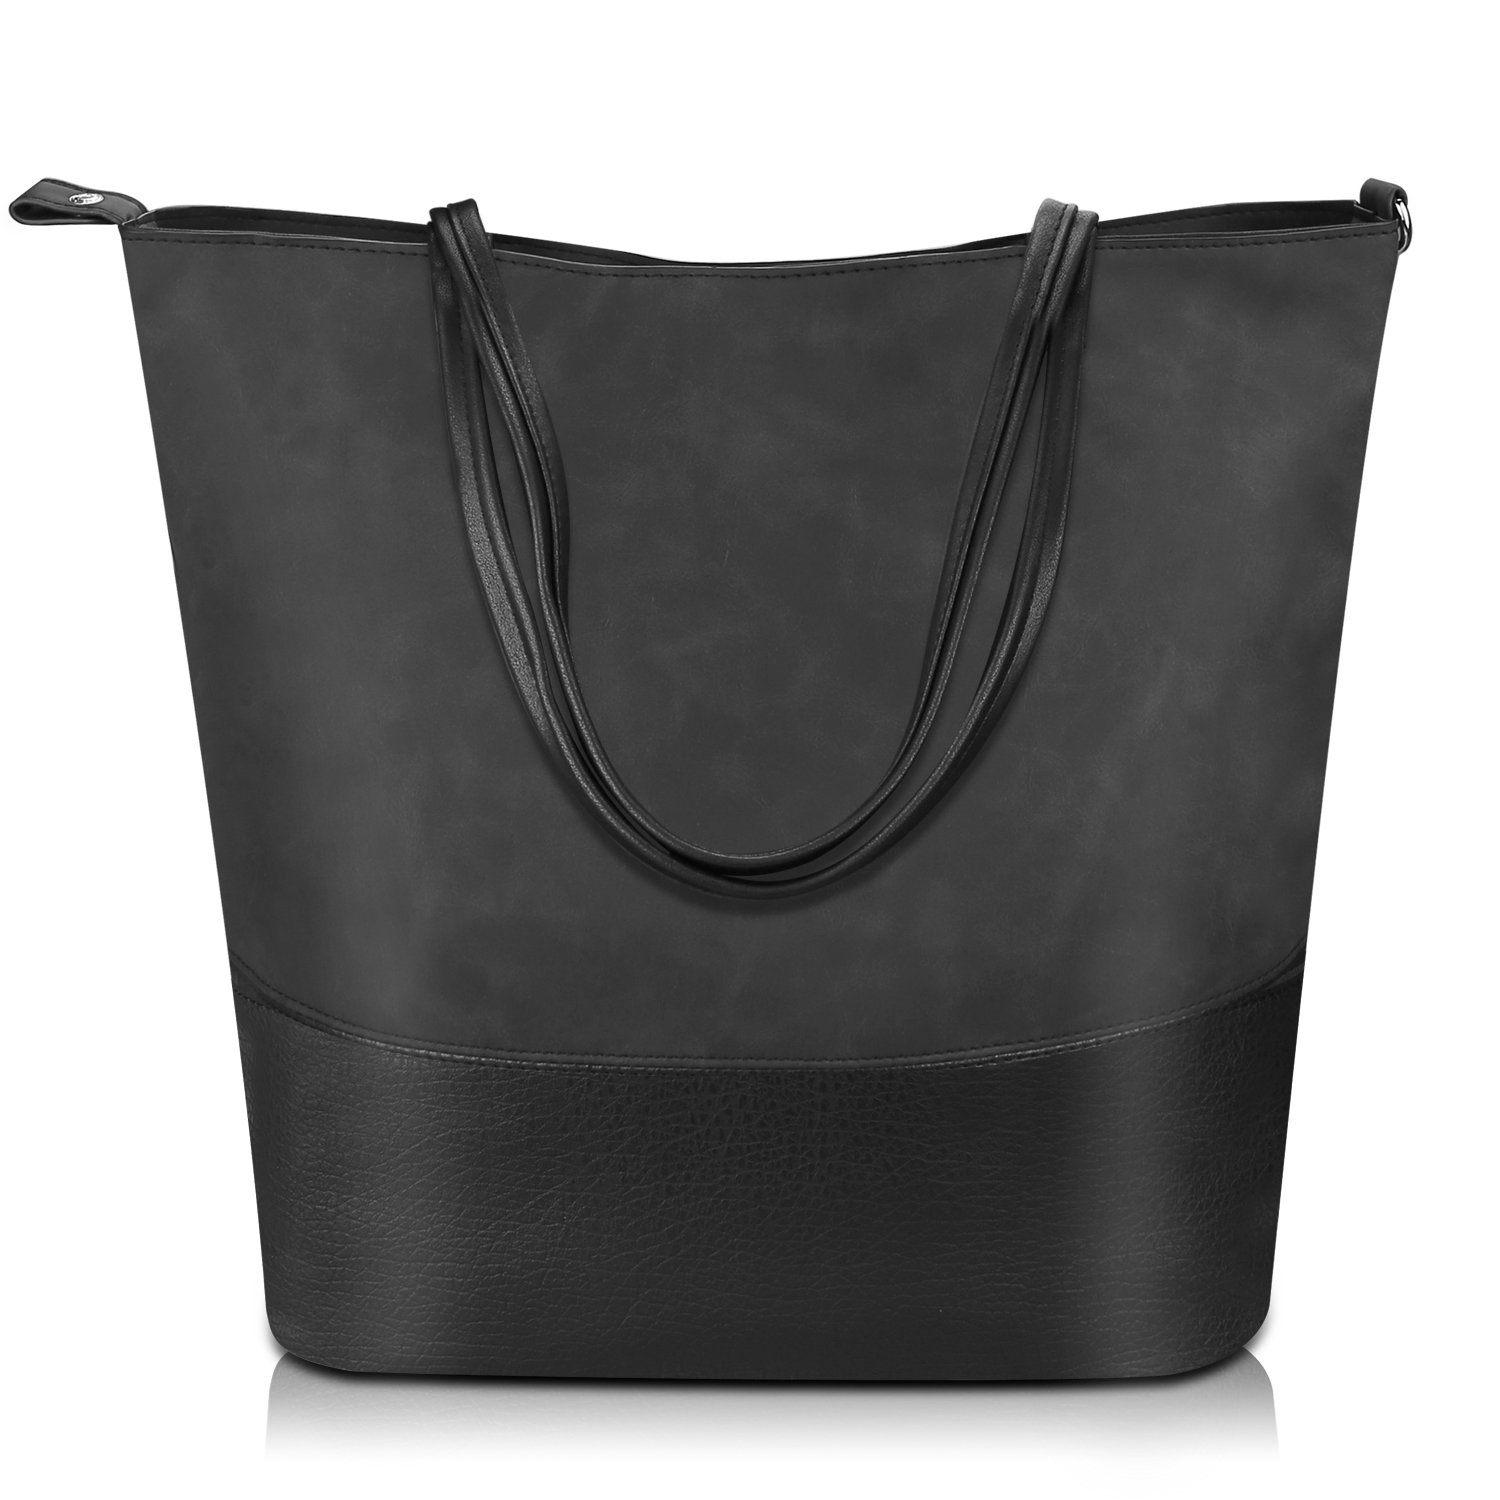 5a4b331c4171 Proking Women Handbags Ladies Fashion Shopping Bag Tote Bags for Women Top  Handle Bags Soft PU Leather Shoulder Bags Women - Black(Size L)   Amazon.co.uk  ...